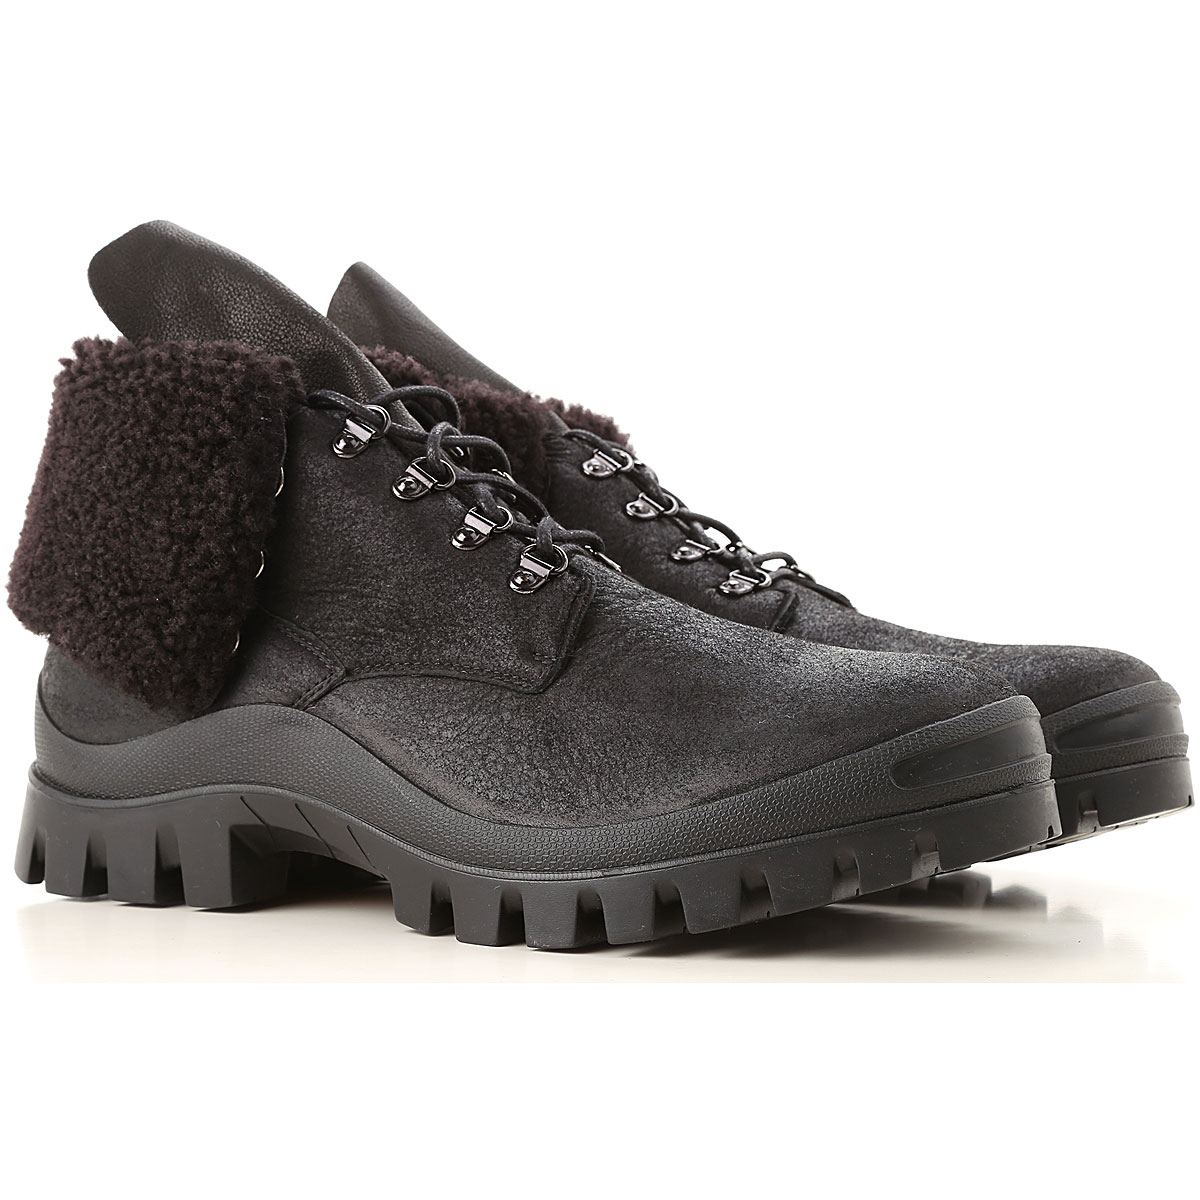 Henderson Boots for Men Booties On Sale USA - GOOFASH